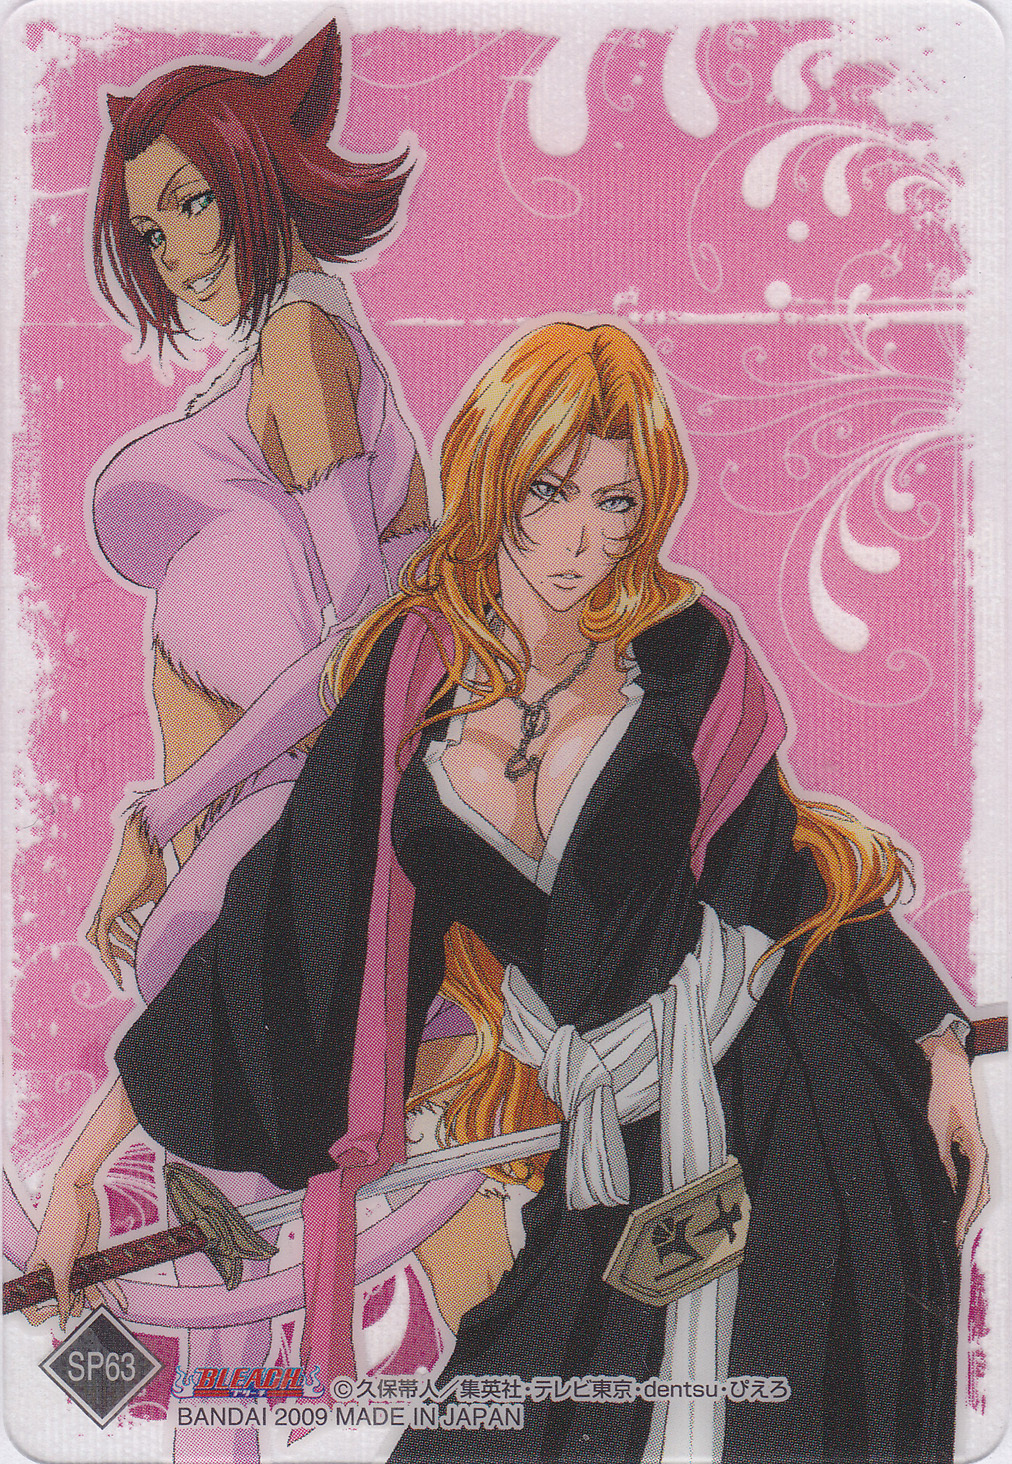 Rangiku and Haineko